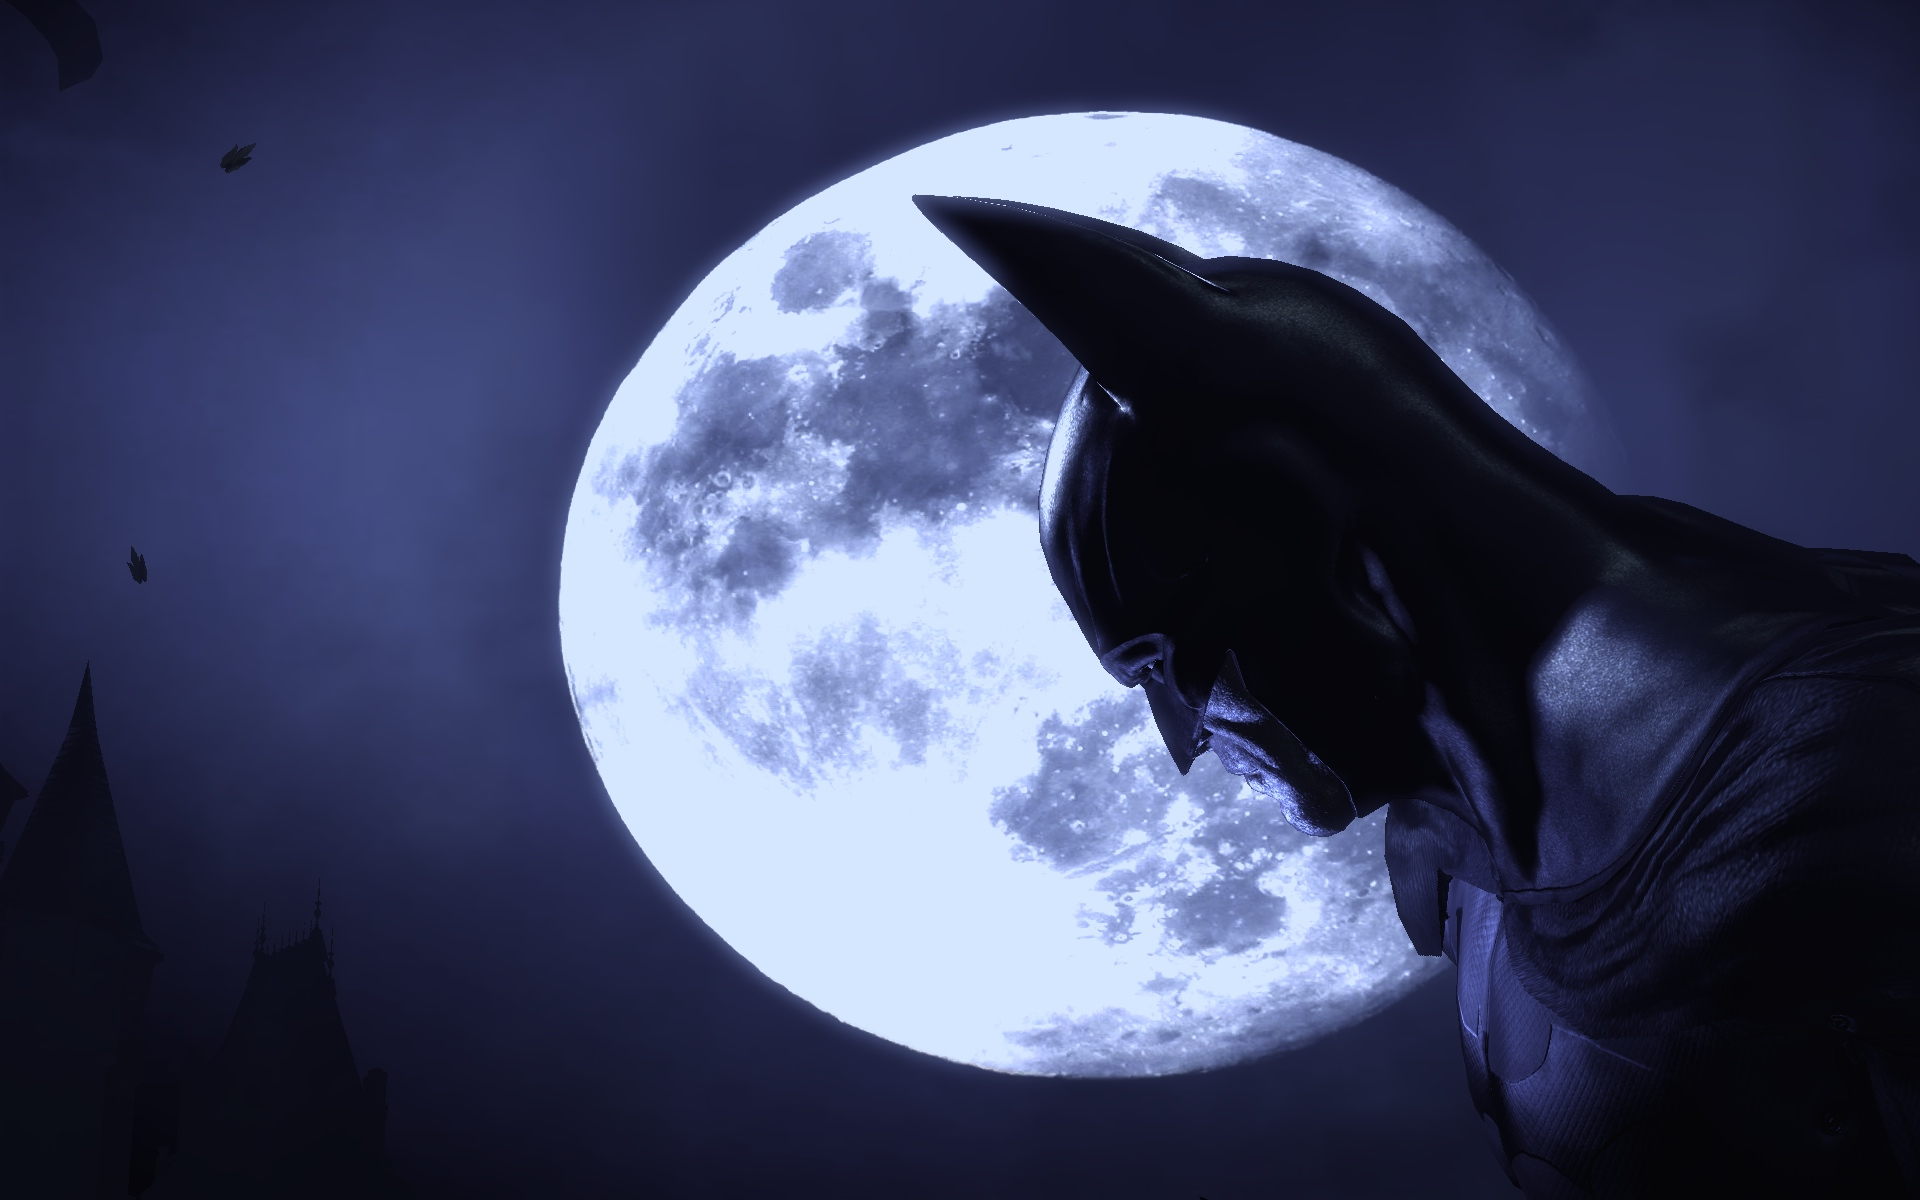 Batman Arkham Asylum wallpaper 52127 1920x1200